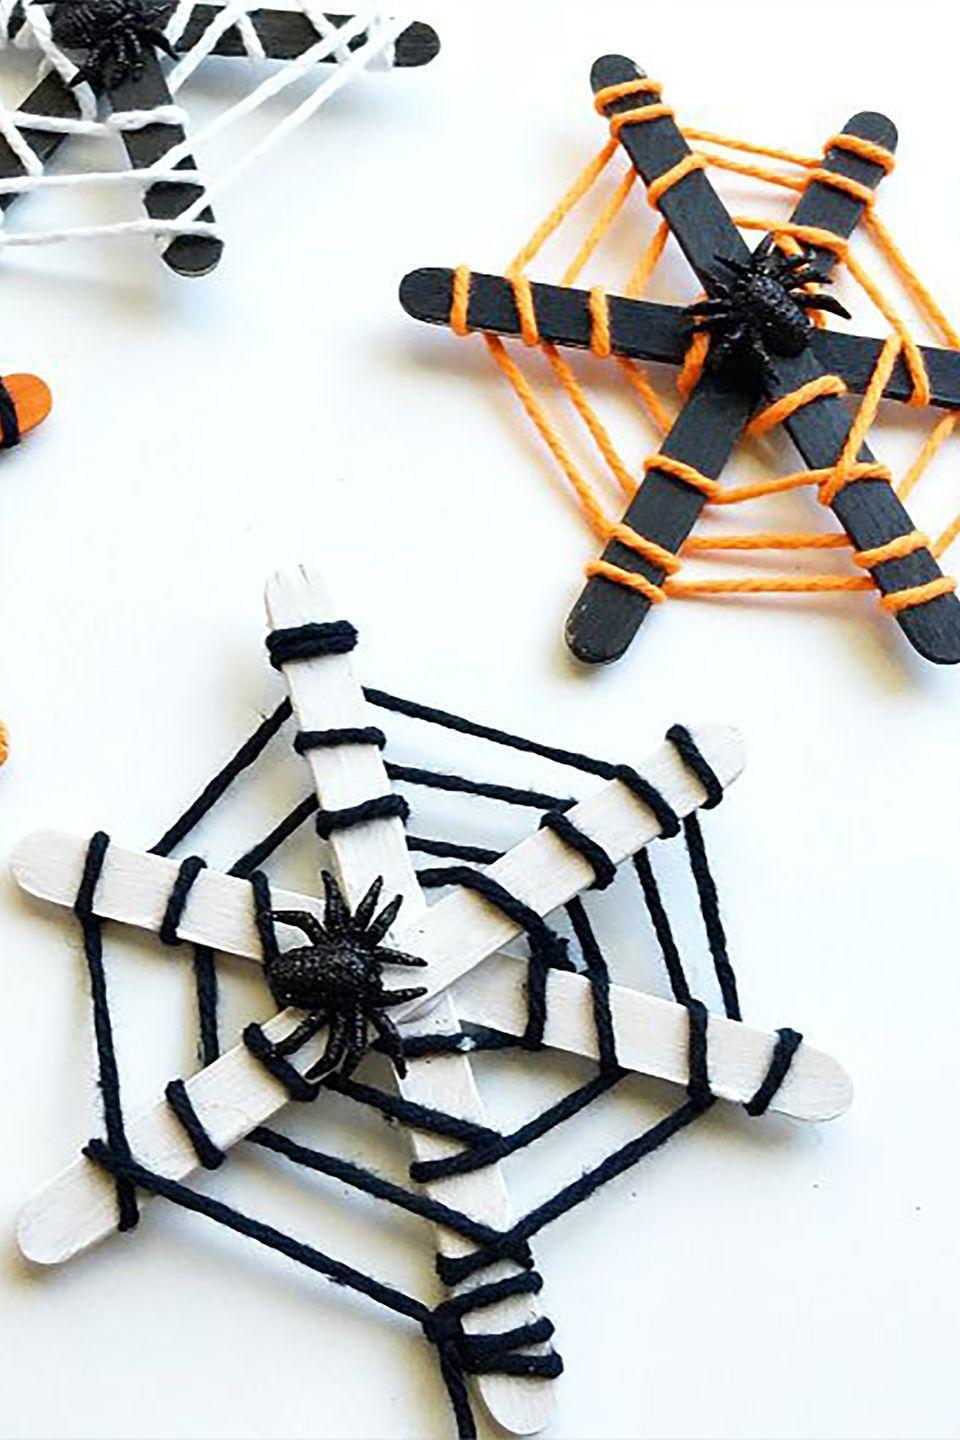 "<p>These not-so-scary spider webs are made with painted crafts sticks and yarn.</p><p><strong>Get the tutorial at Buggy and Buddy.</strong><br></p><p><a class=""link rapid-noclick-resp"" href=""https://www.amazon.com/Acerich-Sticks-Wooden-Popsicle-Length/dp/B01ECBIQAI/?tag=syn-yahoo-20&ascsubtag=%5Bartid%7C10050.g.4950%5Bsrc%7Cyahoo-us"" rel=""nofollow noopener"" target=""_blank"" data-ylk=""slk:SHOP CRAFT STICKS"">SHOP CRAFT STICKS</a></p>"